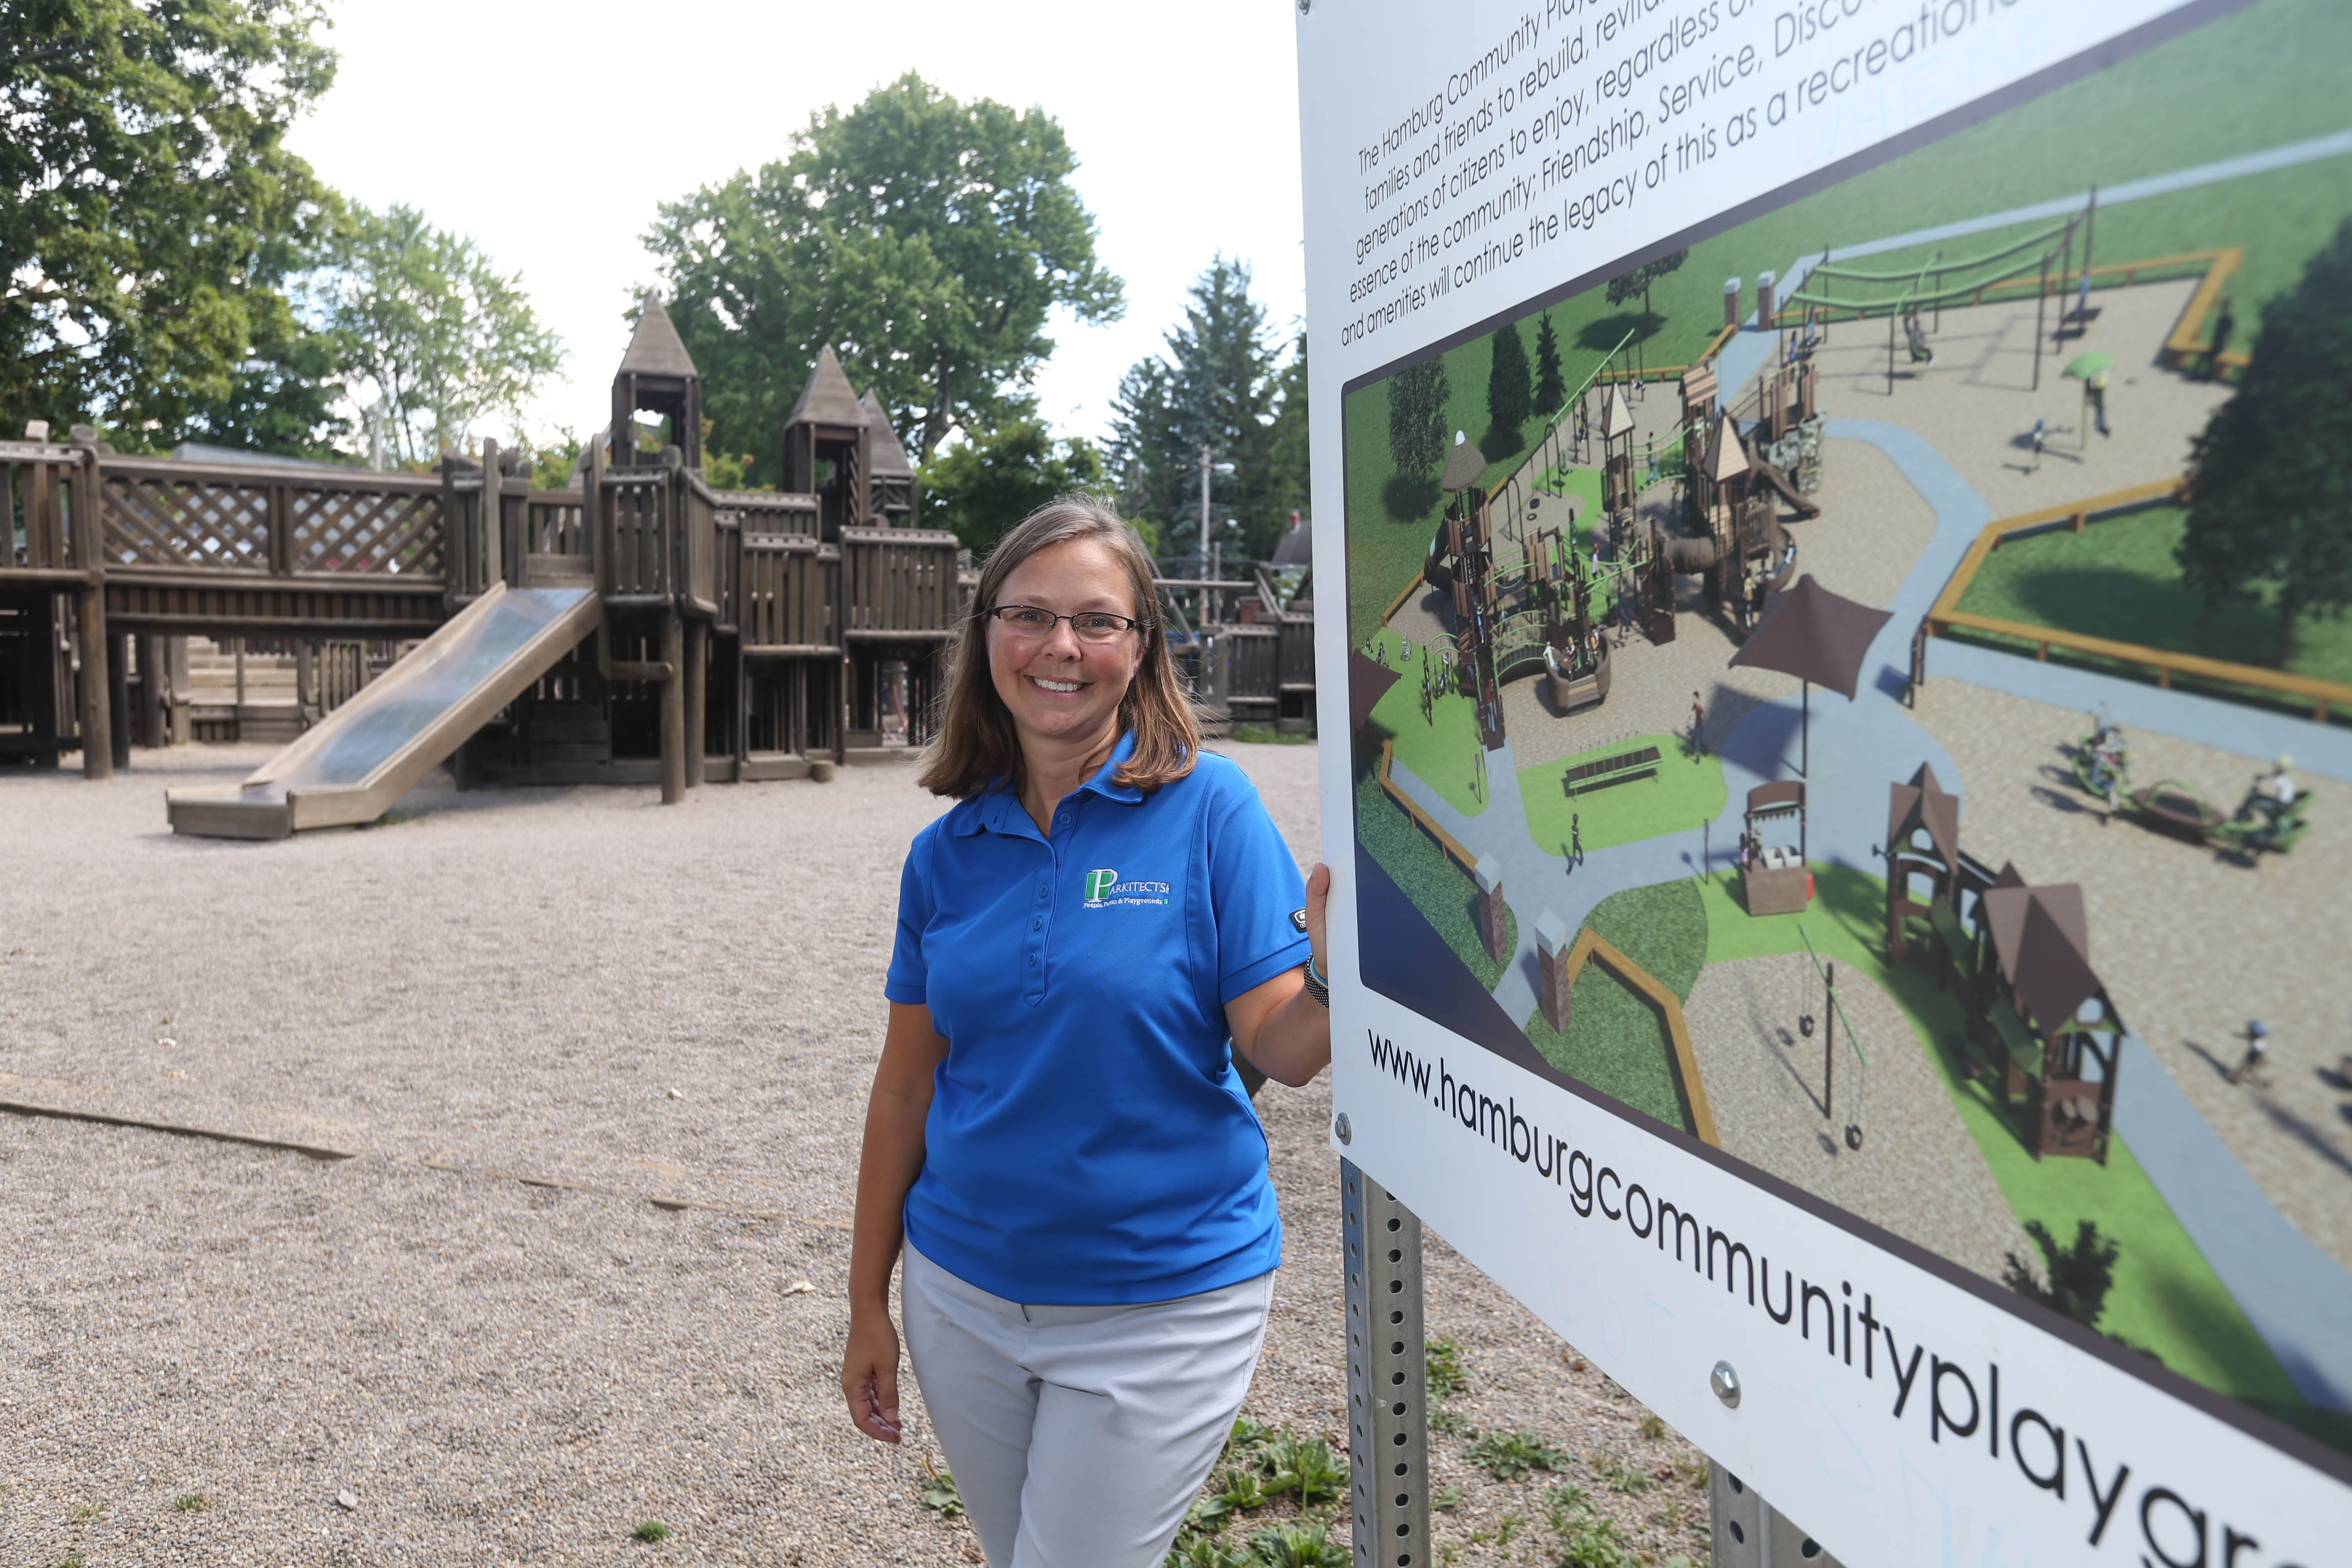 """We wanted to make sure it was all-inclusive, for kids ages 2 to 12 and for all abilities. We're really paying homage to the existing one, picking similar color palettes, similar pieces with the roofs, incorporating pieces the kids really like."" – Landscape architect Lynn Mason, on the new Hamburg Community Playground that she designed for her hometown"